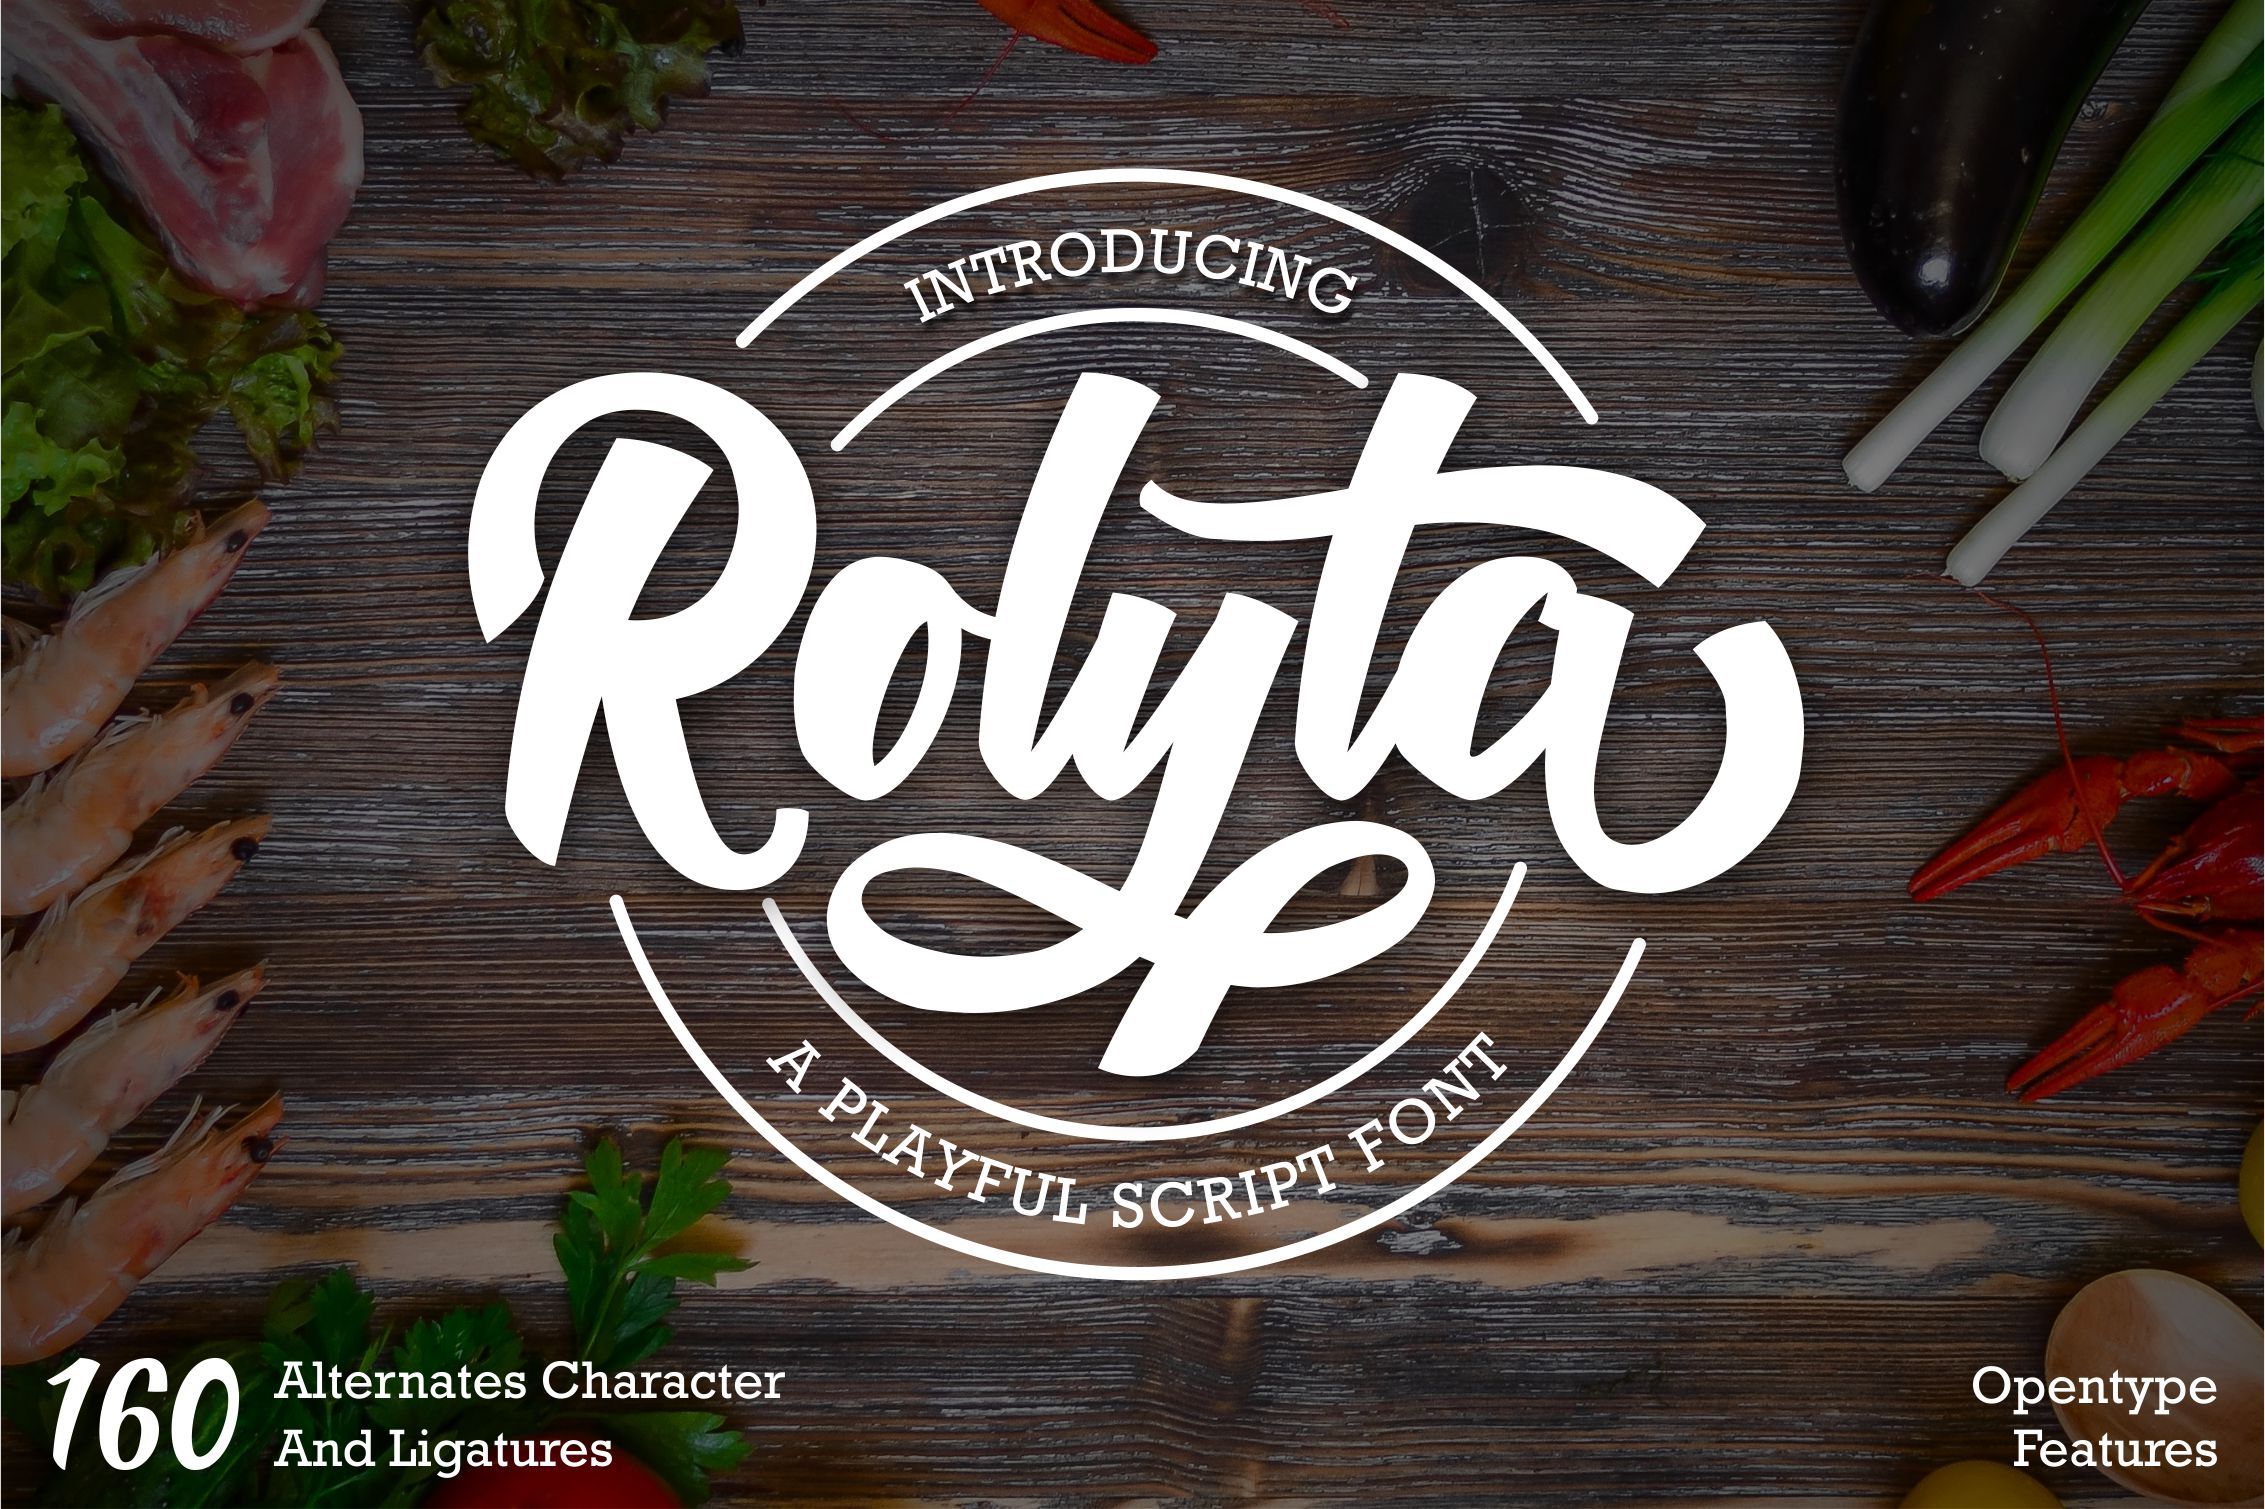 Rolyta - Playful Bold Script Font example image 1